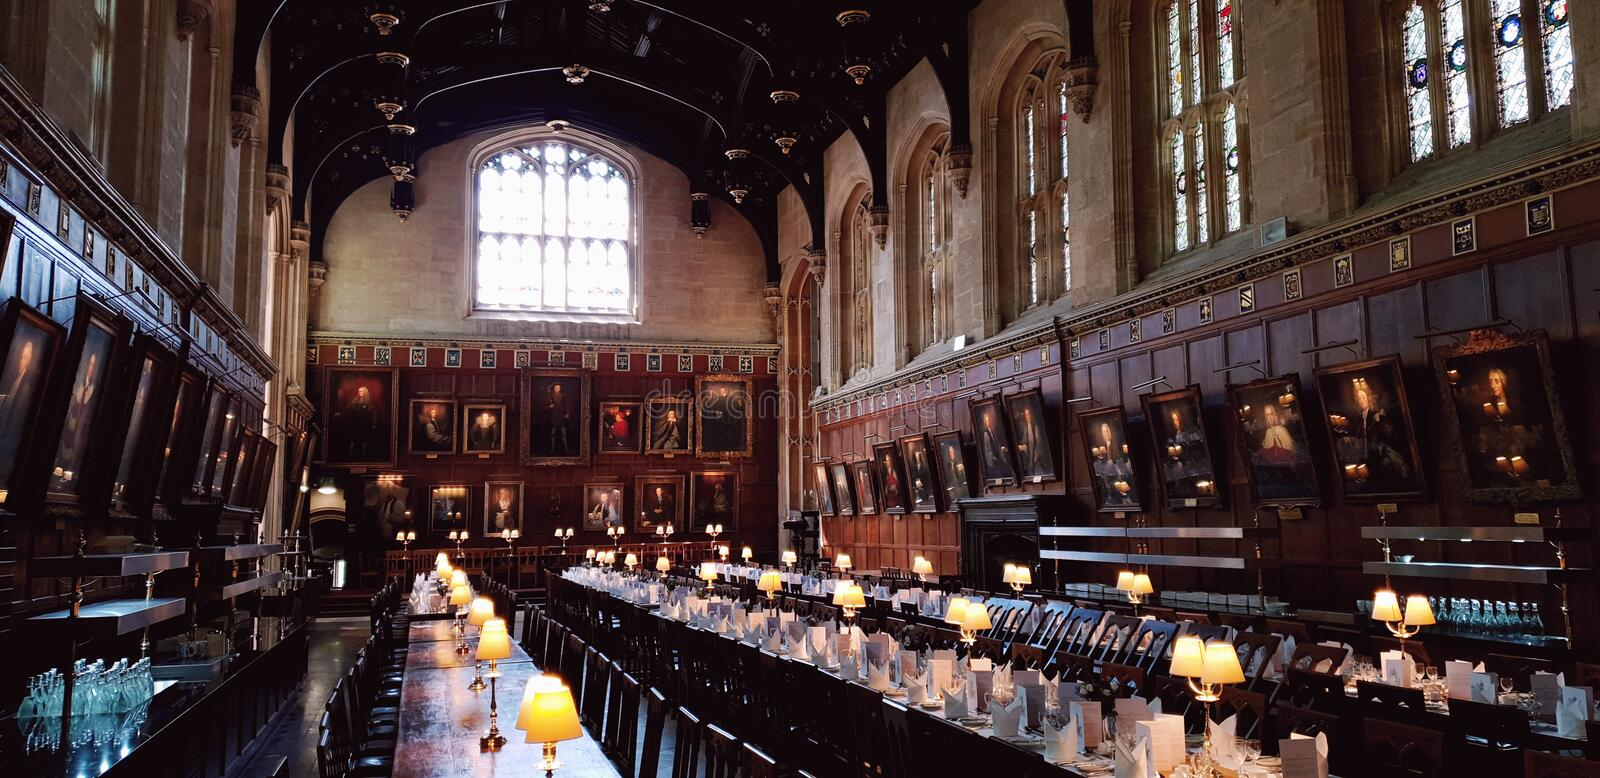 Dining Hall, Christ Church College, Oxford, England stock photo